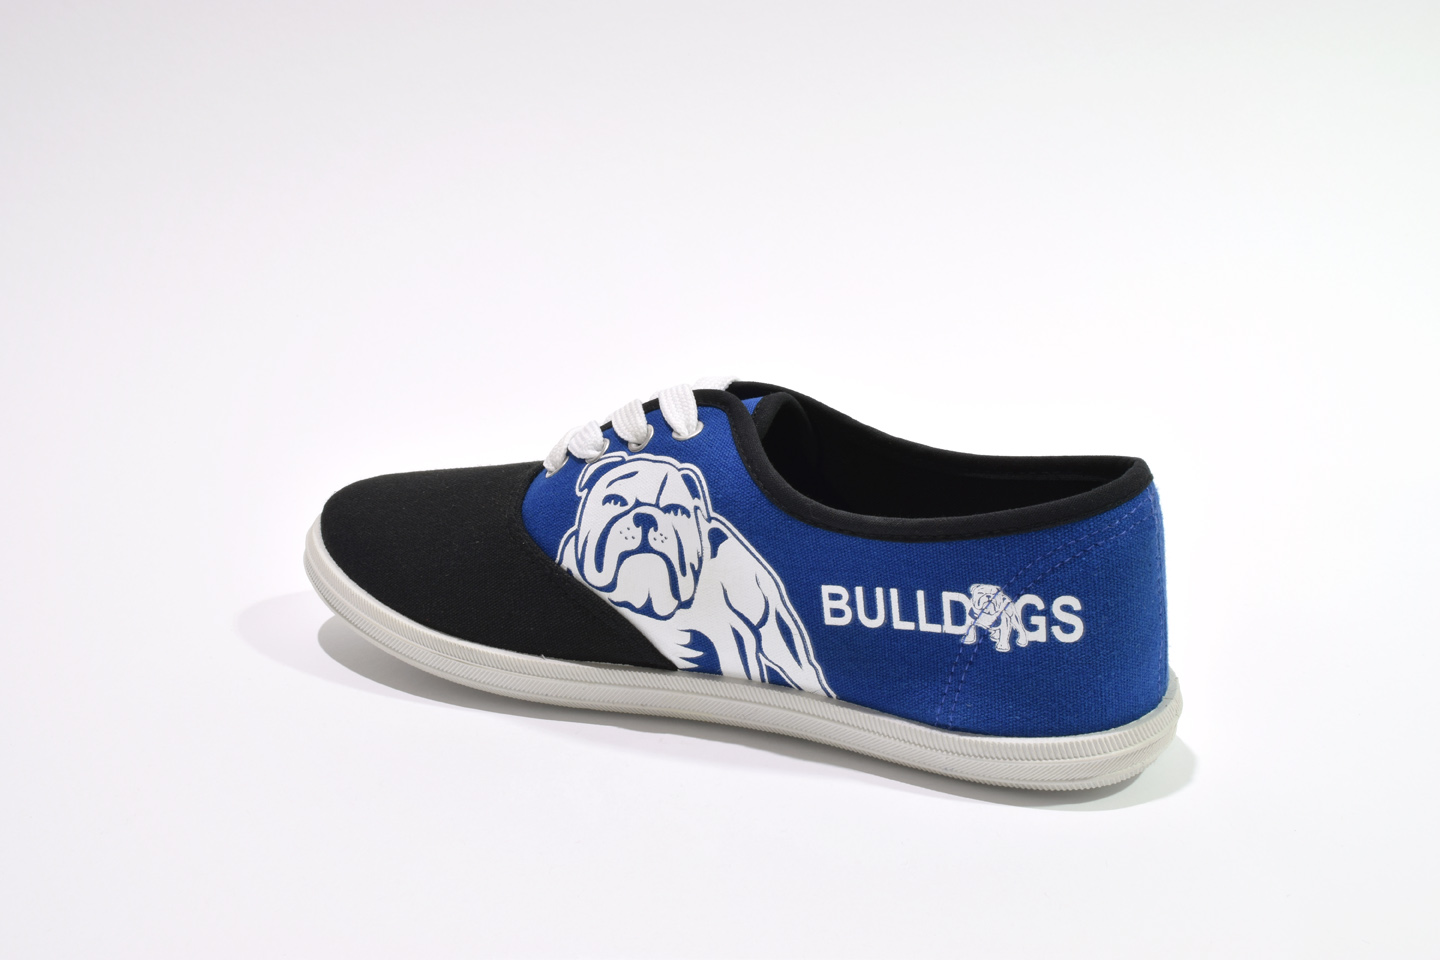 Bulldogs 8 copy